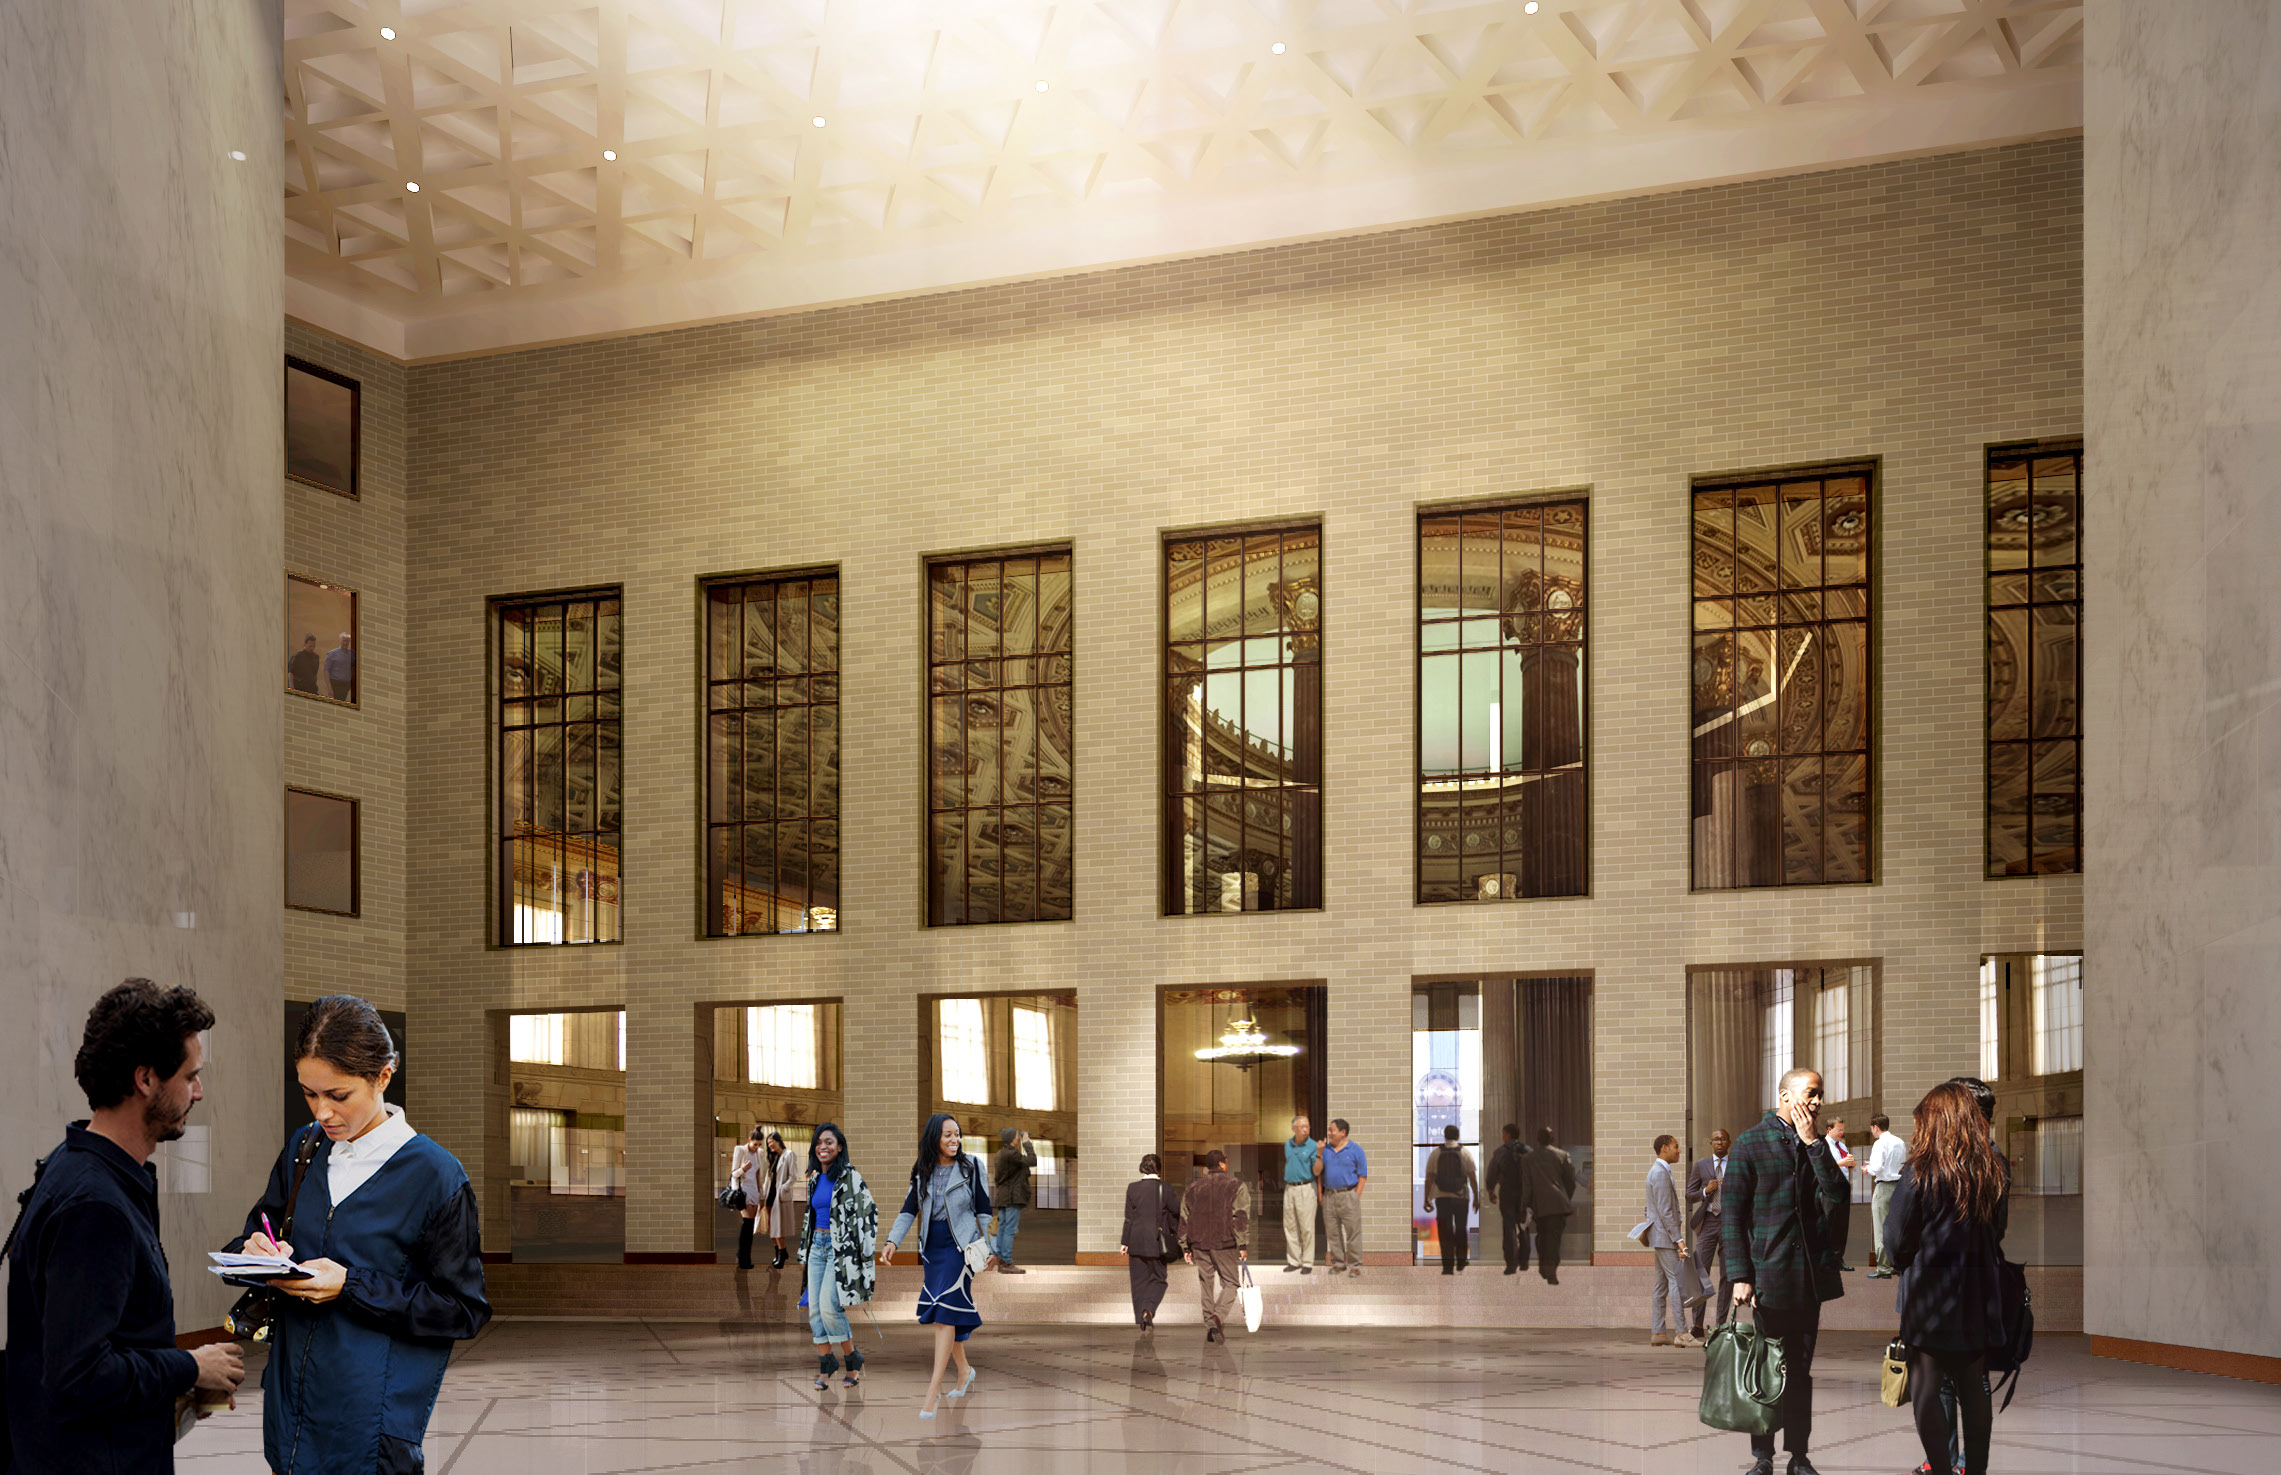 Rendering of the former Dime Savings Bank at 9 DeKalb Avenue as seen from the atrium at 340 Flatbush Avenue Extension. Credit: SHoP